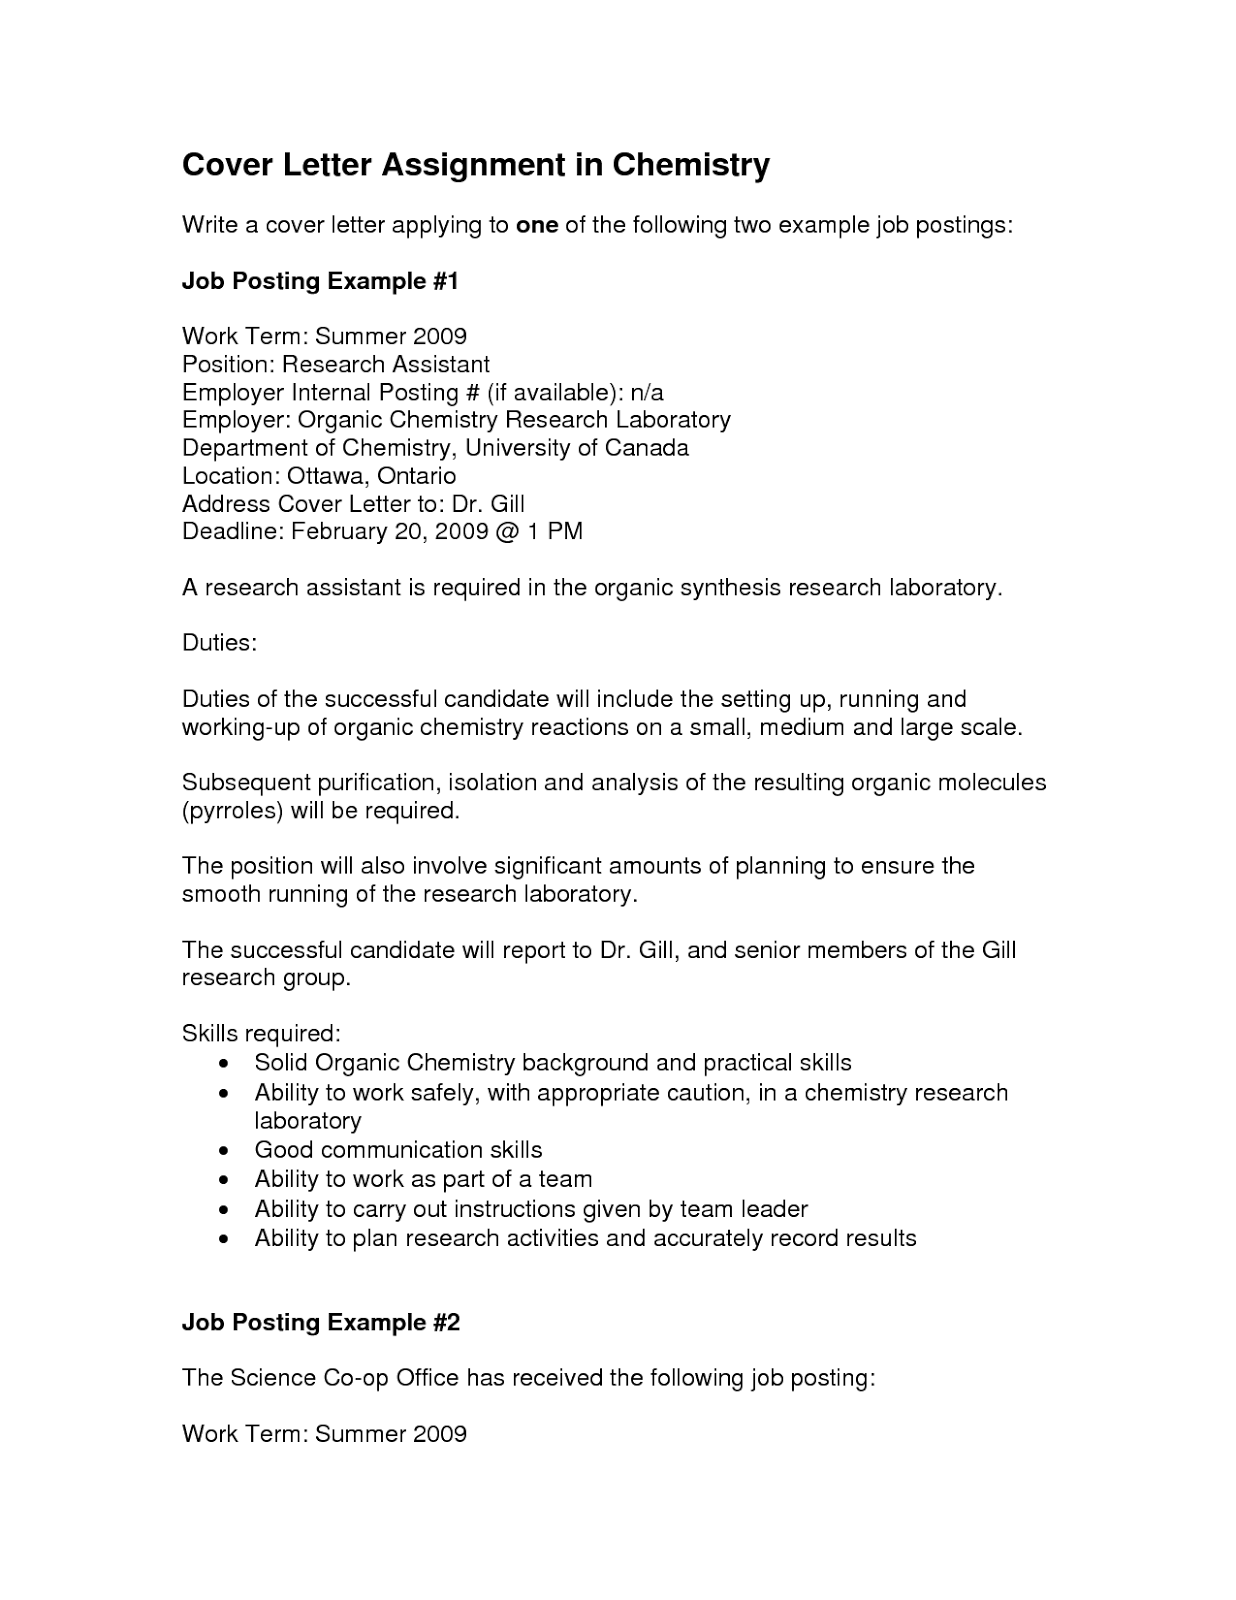 Cover Letter For Teaching Job Application Choice Image - Cover ...